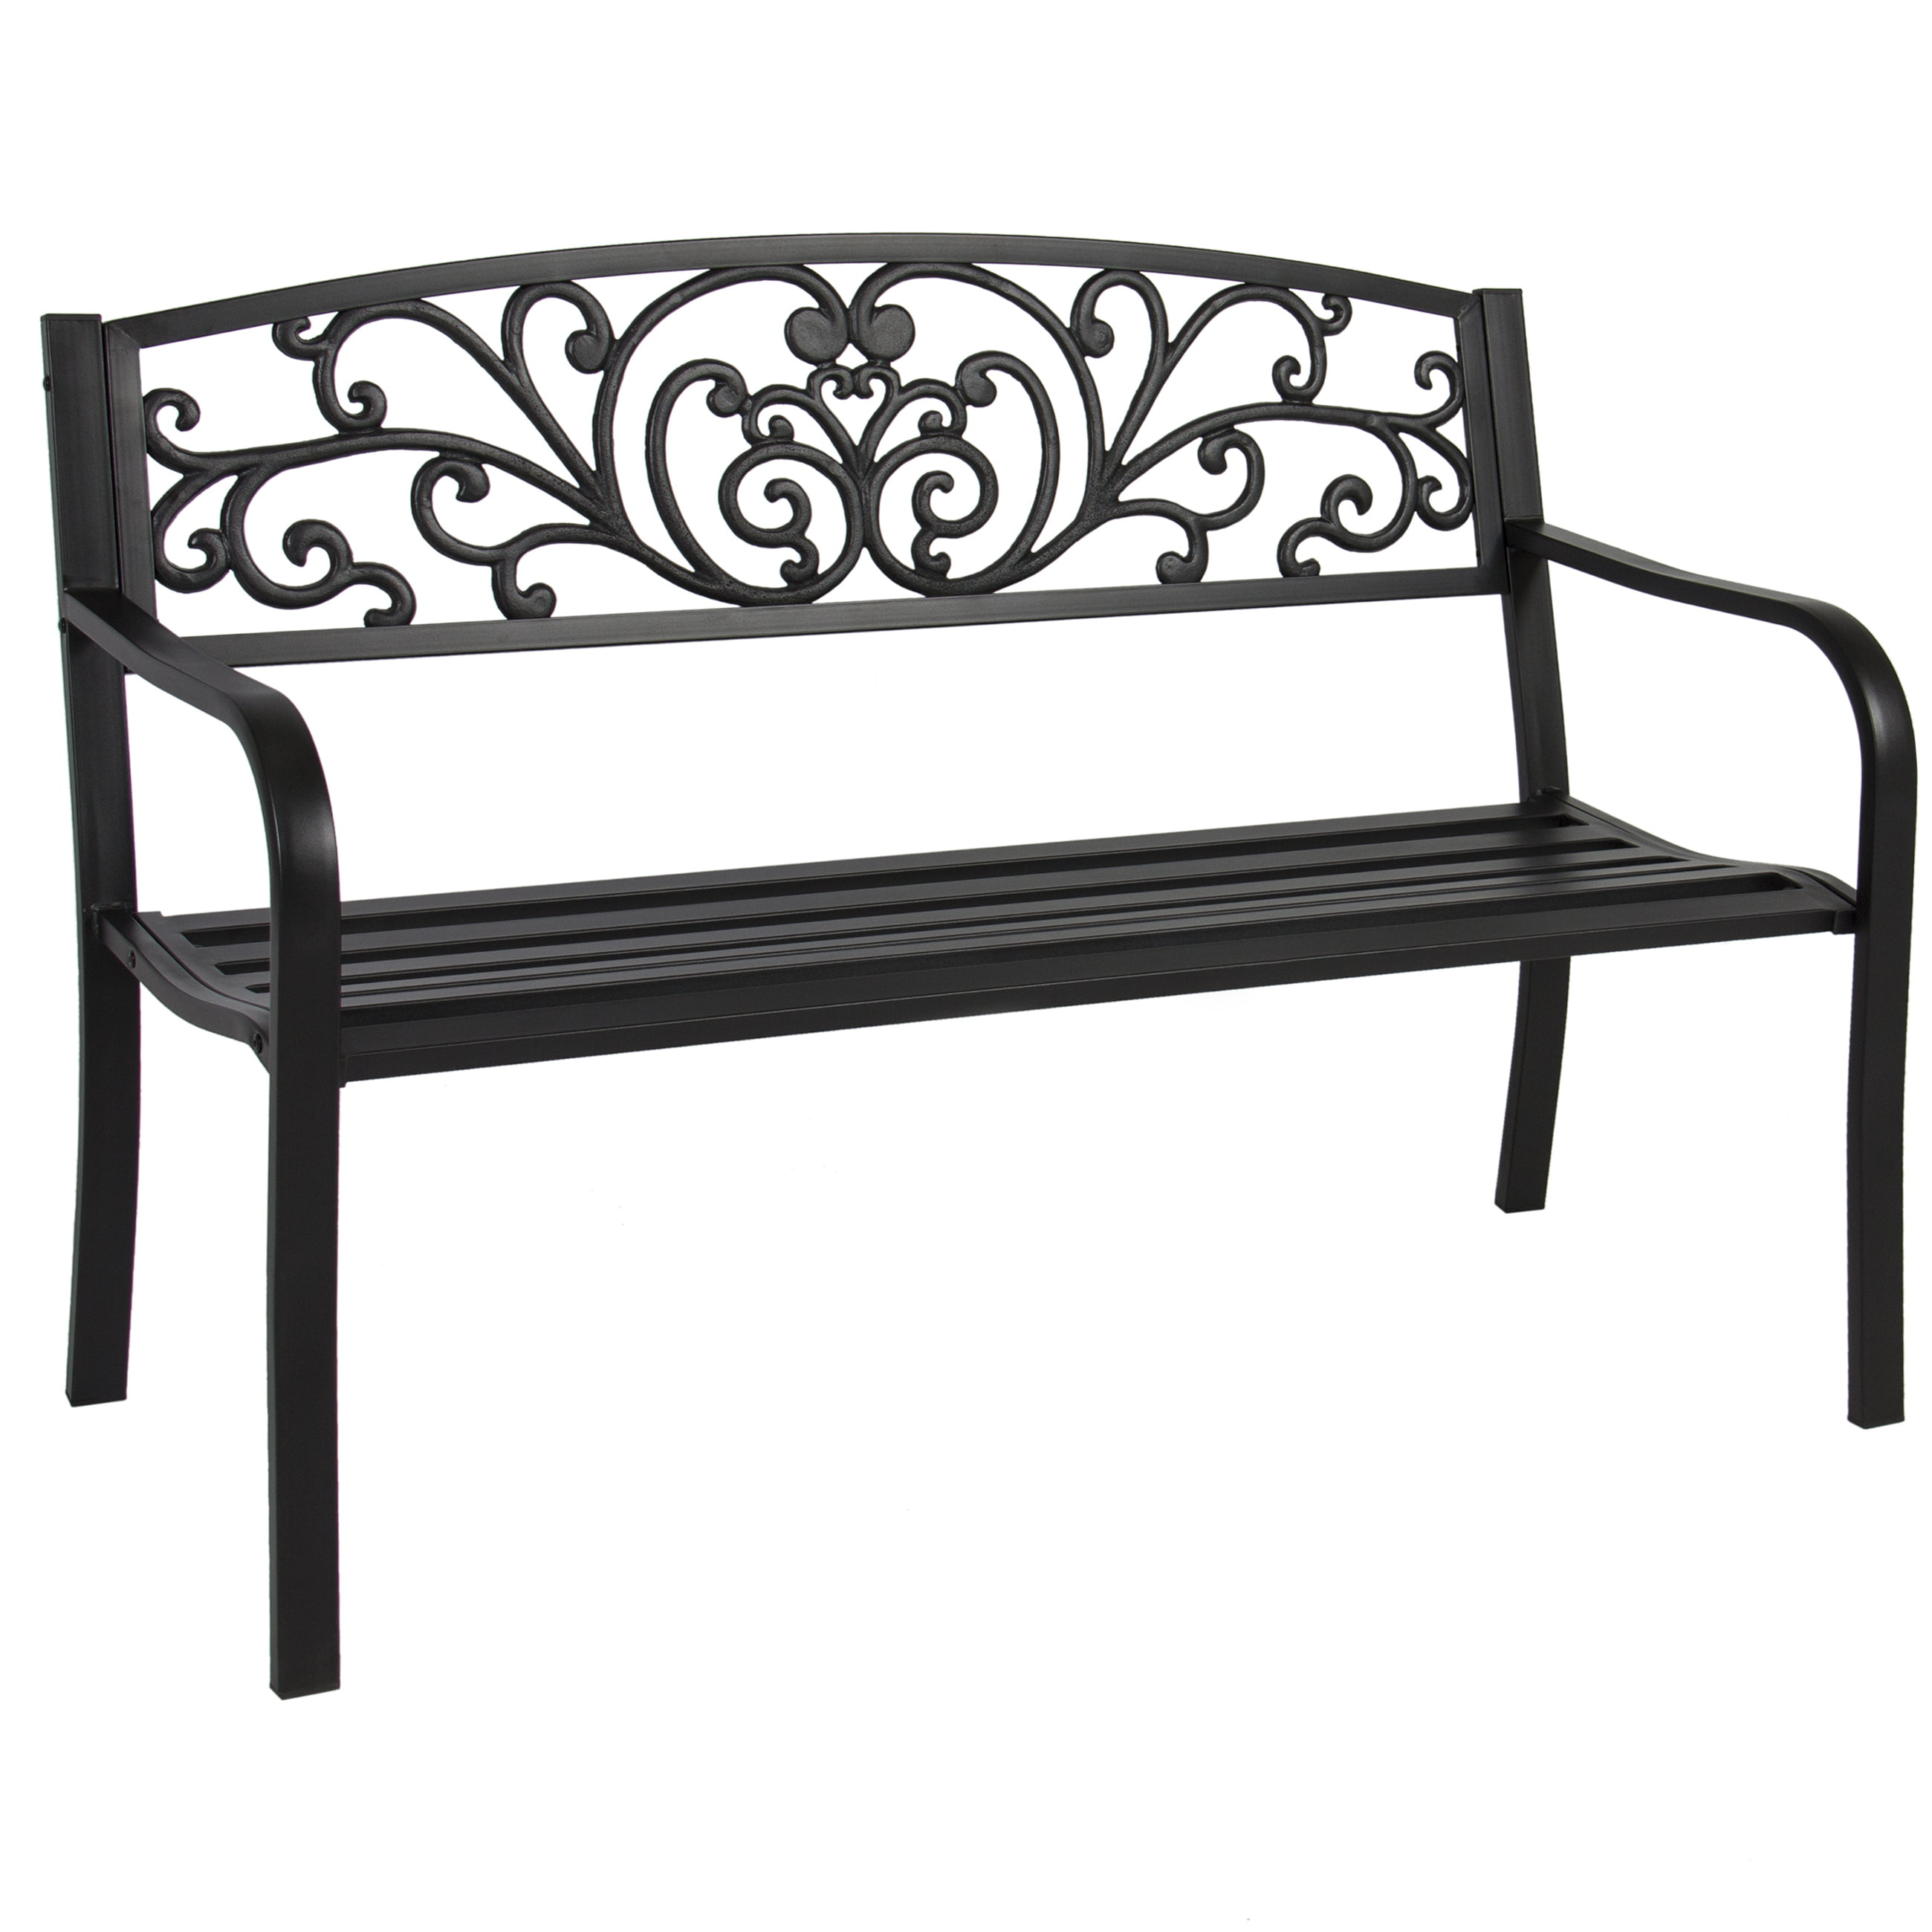 Best choice products 50in outdoor patio garden bench park yard furniture porch chair w steel frame black walmart com